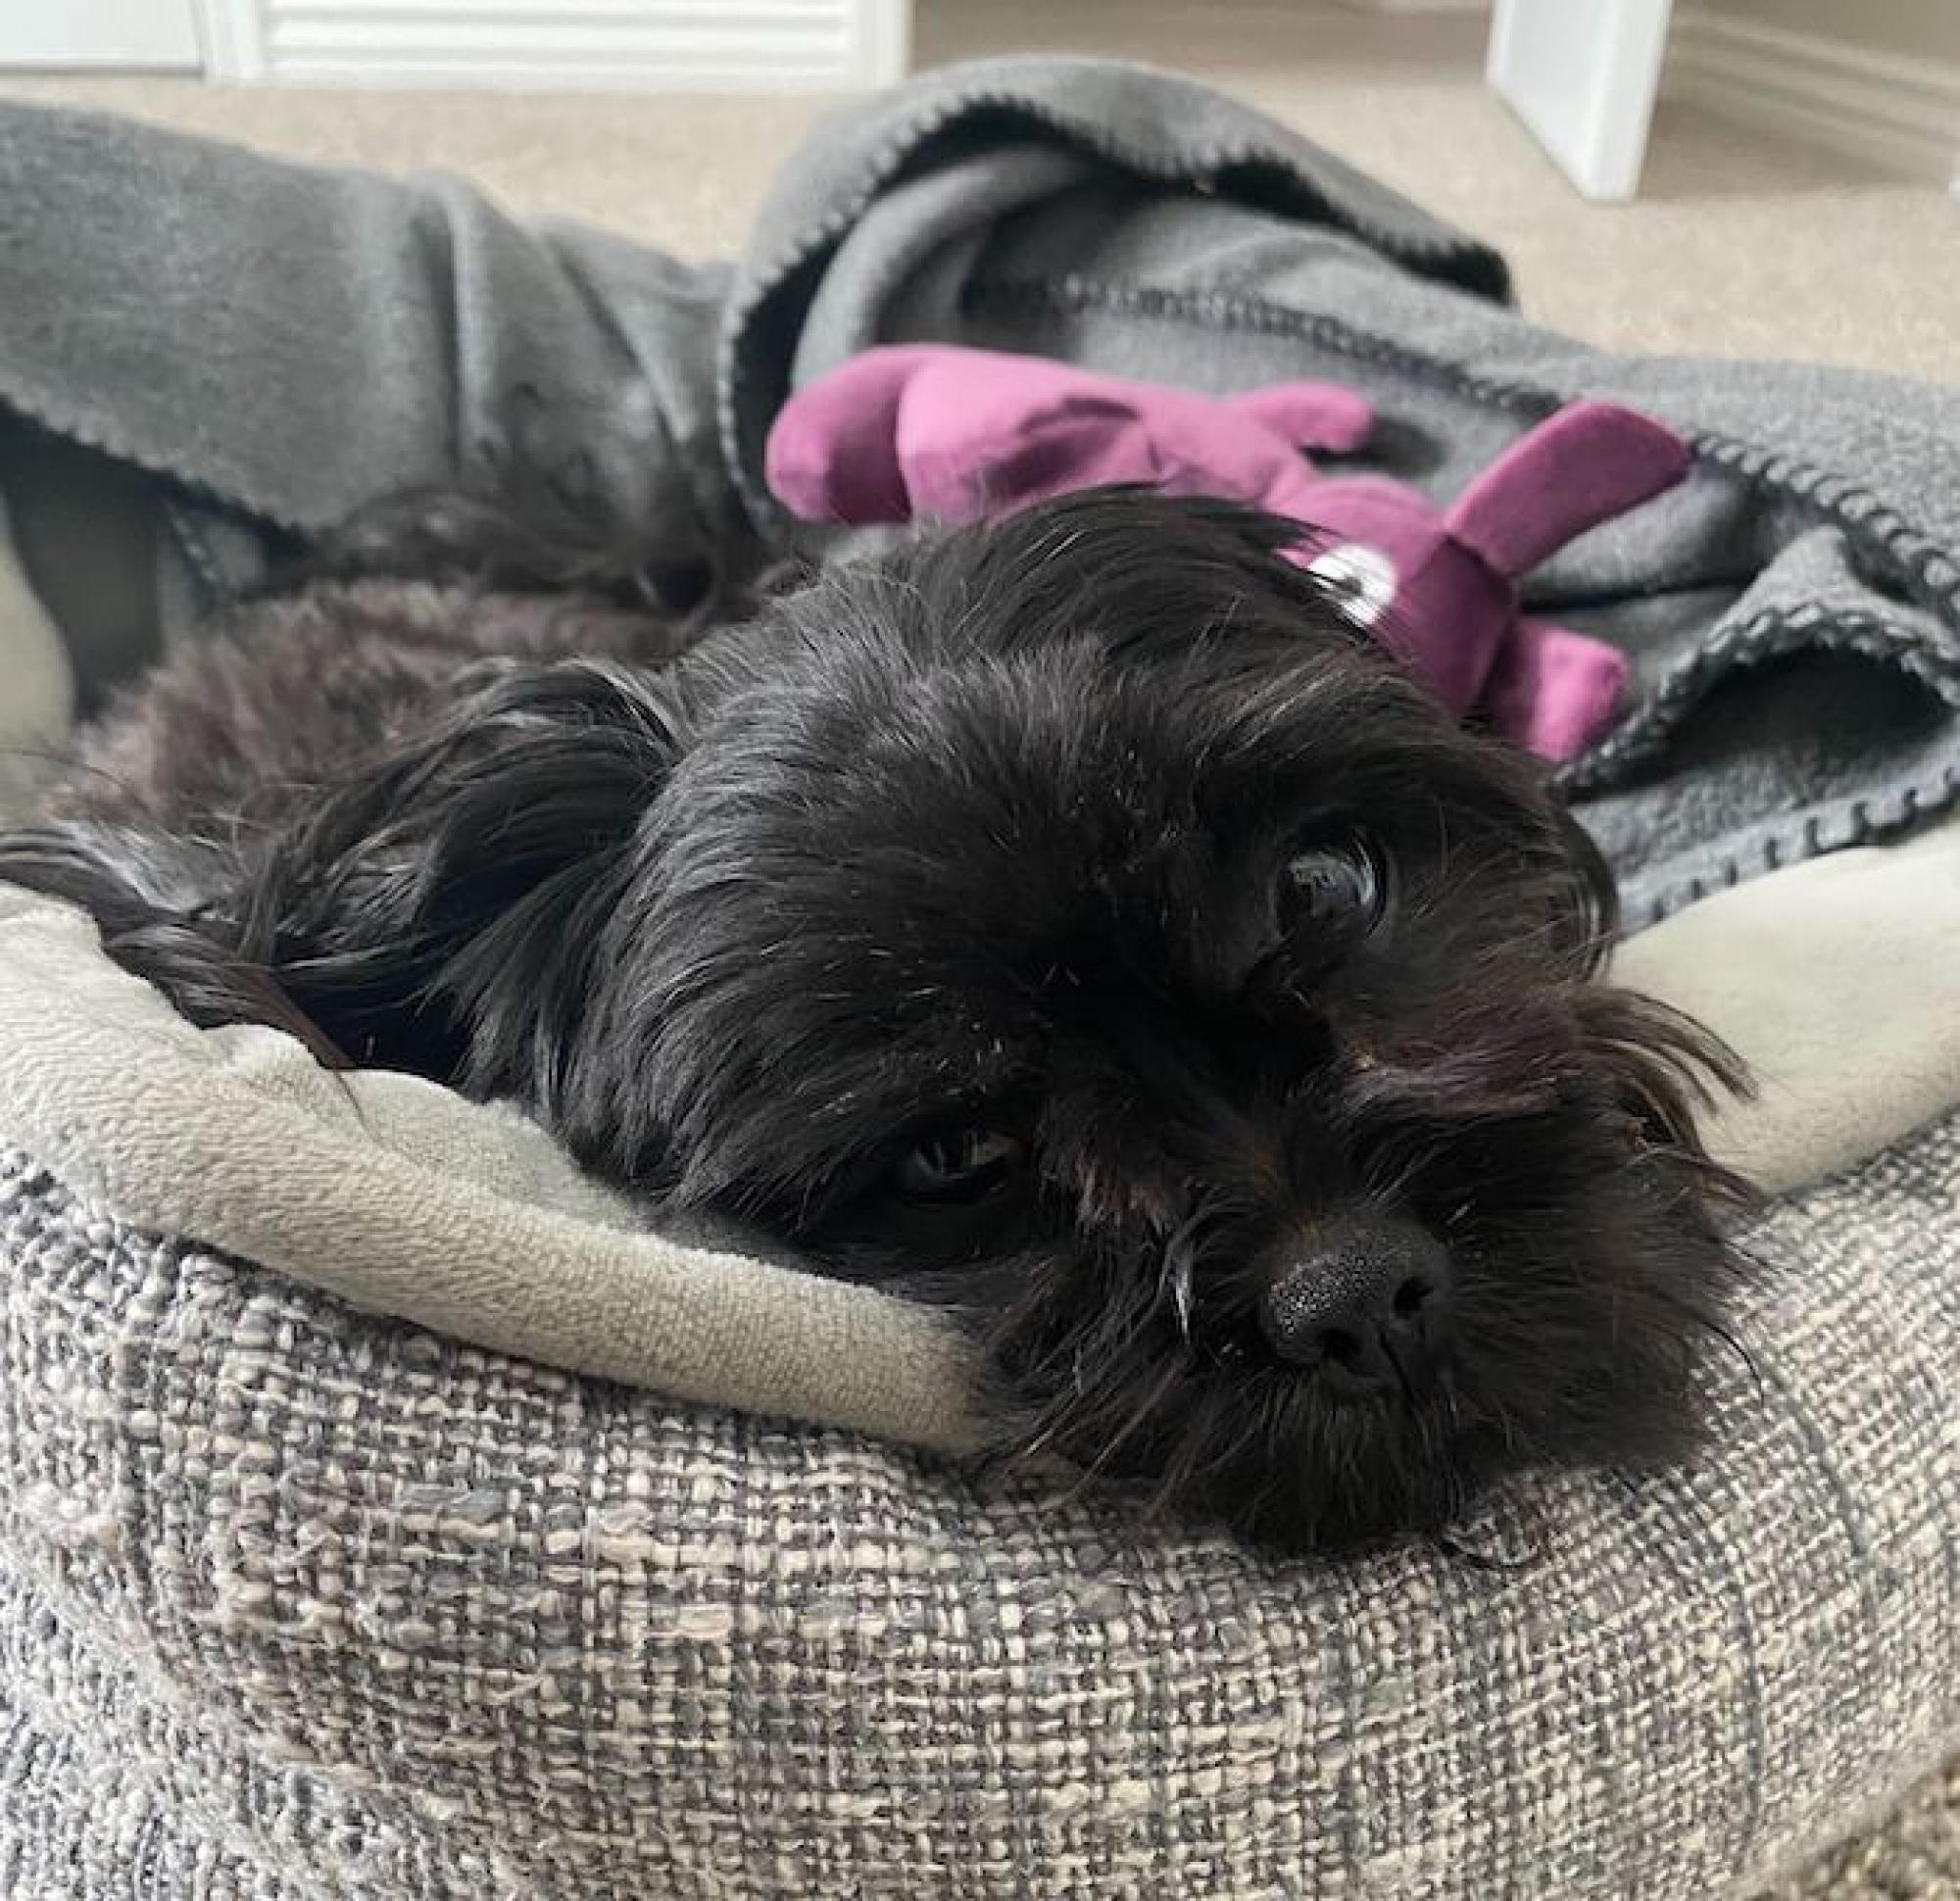 Carmella curls up in her bed the moment she sees I'm going to my home office. She somehow knows that if she doesn't behave while I Zoom, I will put her away in the other bedroom. – Jessica V. Estrella, art director, Marketing and Brand Management